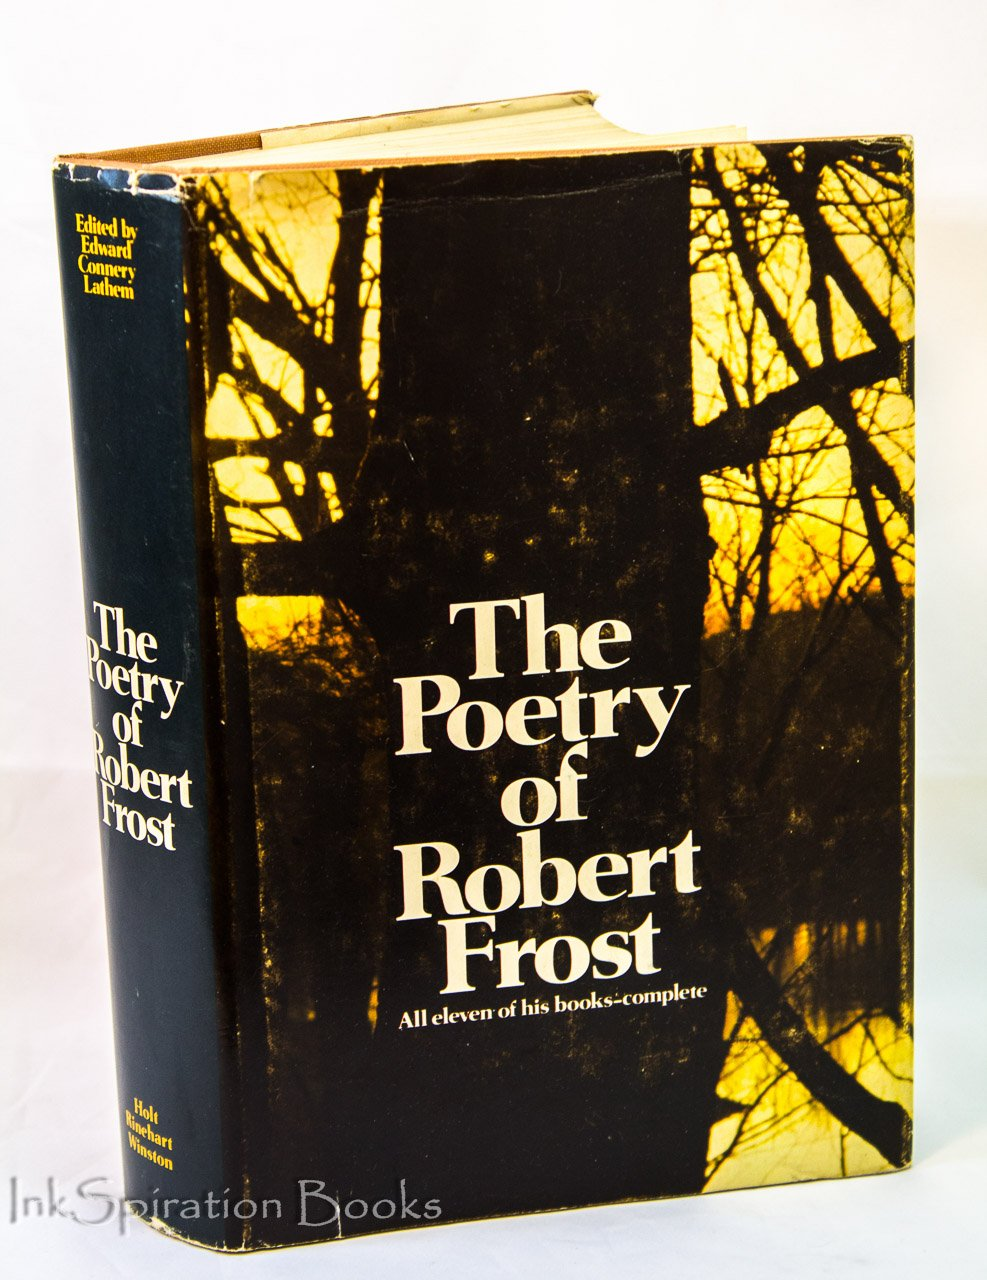 The Poetry of Robert Frost, Robert Frost